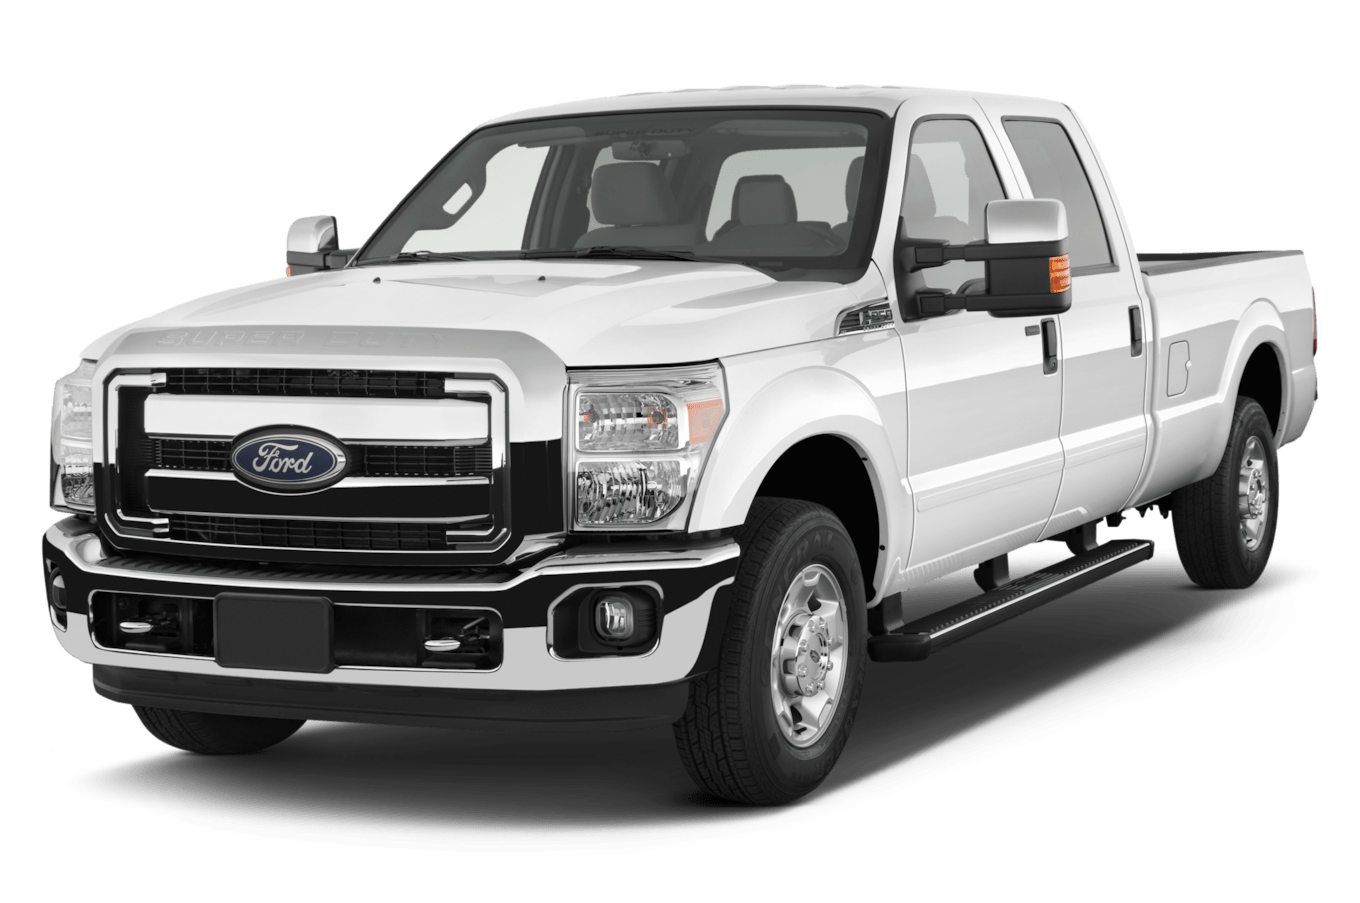 small resolution of 2012 ford f 250 reviews research f 250 prices specs 2012 ford f250 4x4 transmission wiring harness